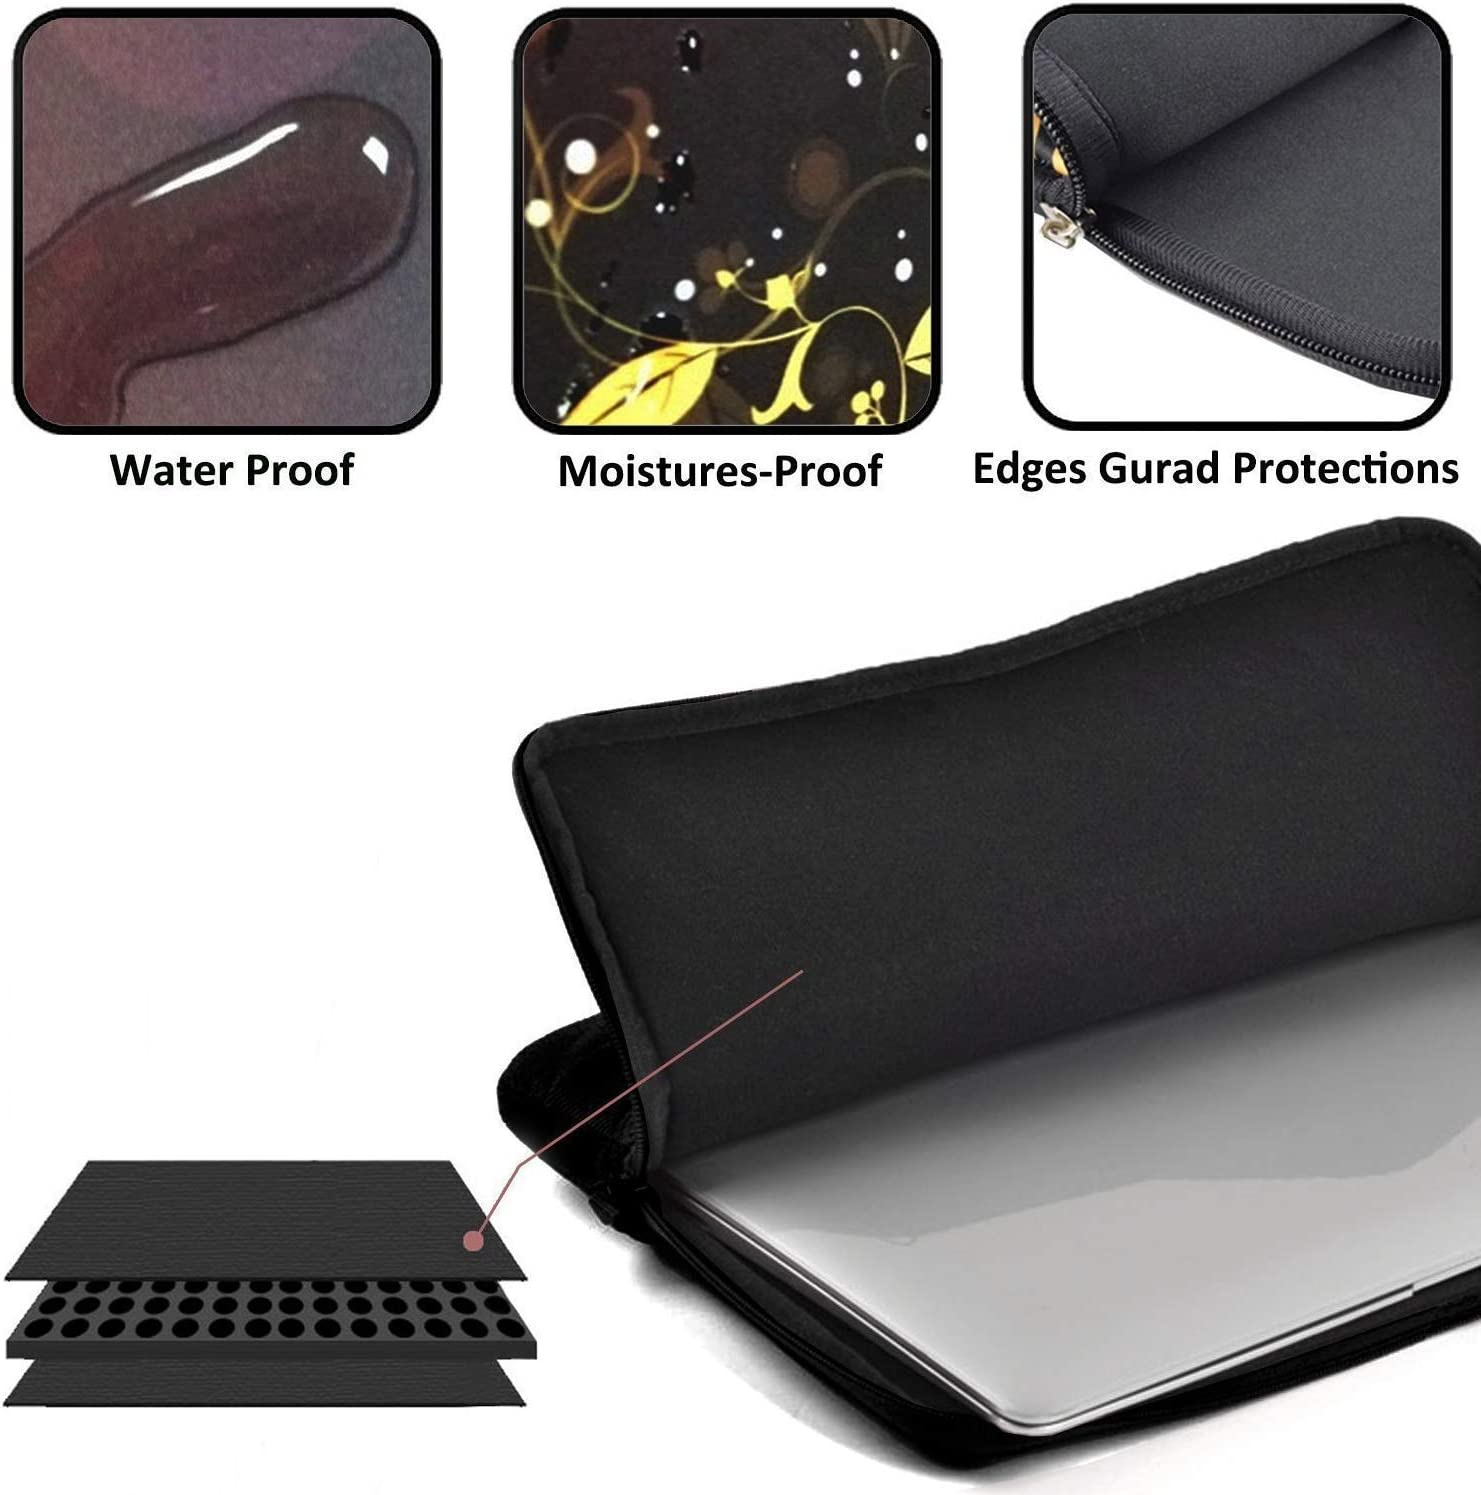 Laptop Sleeve Bag Neoprene Handbag Protective Bag Cover Case for 13 15 Cases Cats Laptop Carrying Case Waterproof Laptop Sleeve